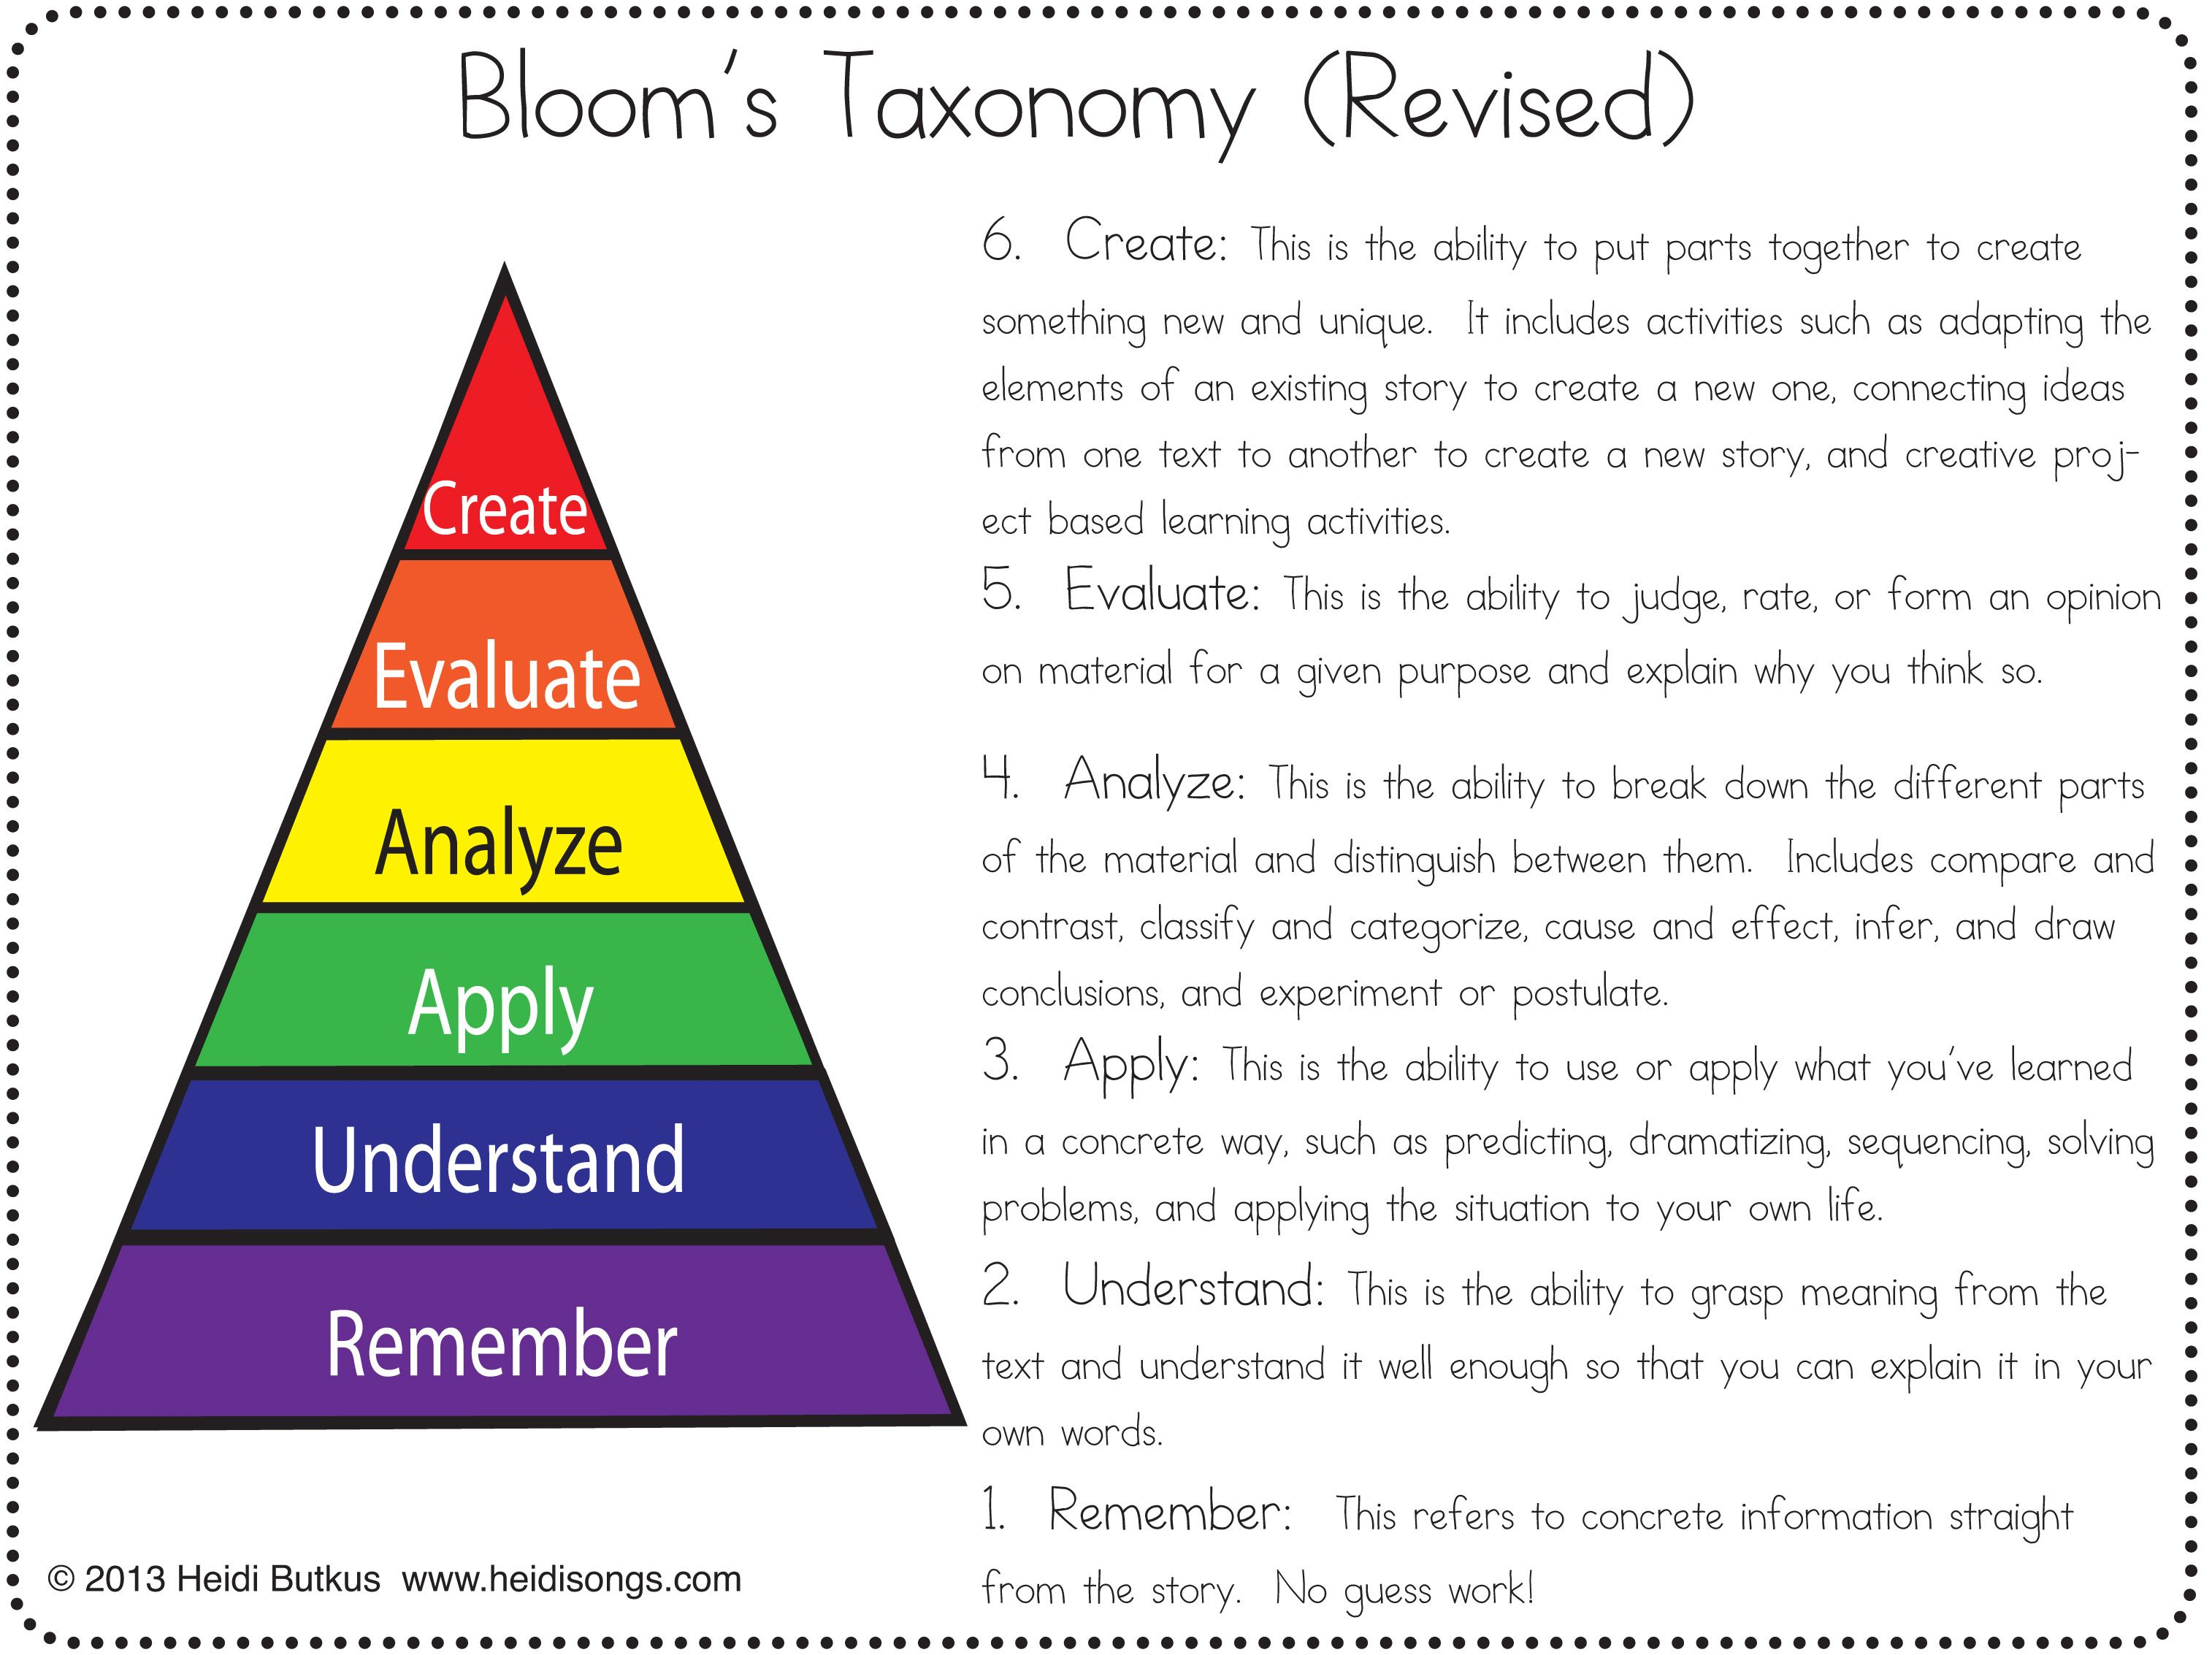 my blooms taxonomy essay Bloom's taxonomy is a hierarchy of cognitive skills that most teachers use as they plan units of study if you are homeschooling your child or are planning to homeschool, it's a system you want to become familiar with if you are new to the taxonomy, you might find yourself wondering exactly how to use it.